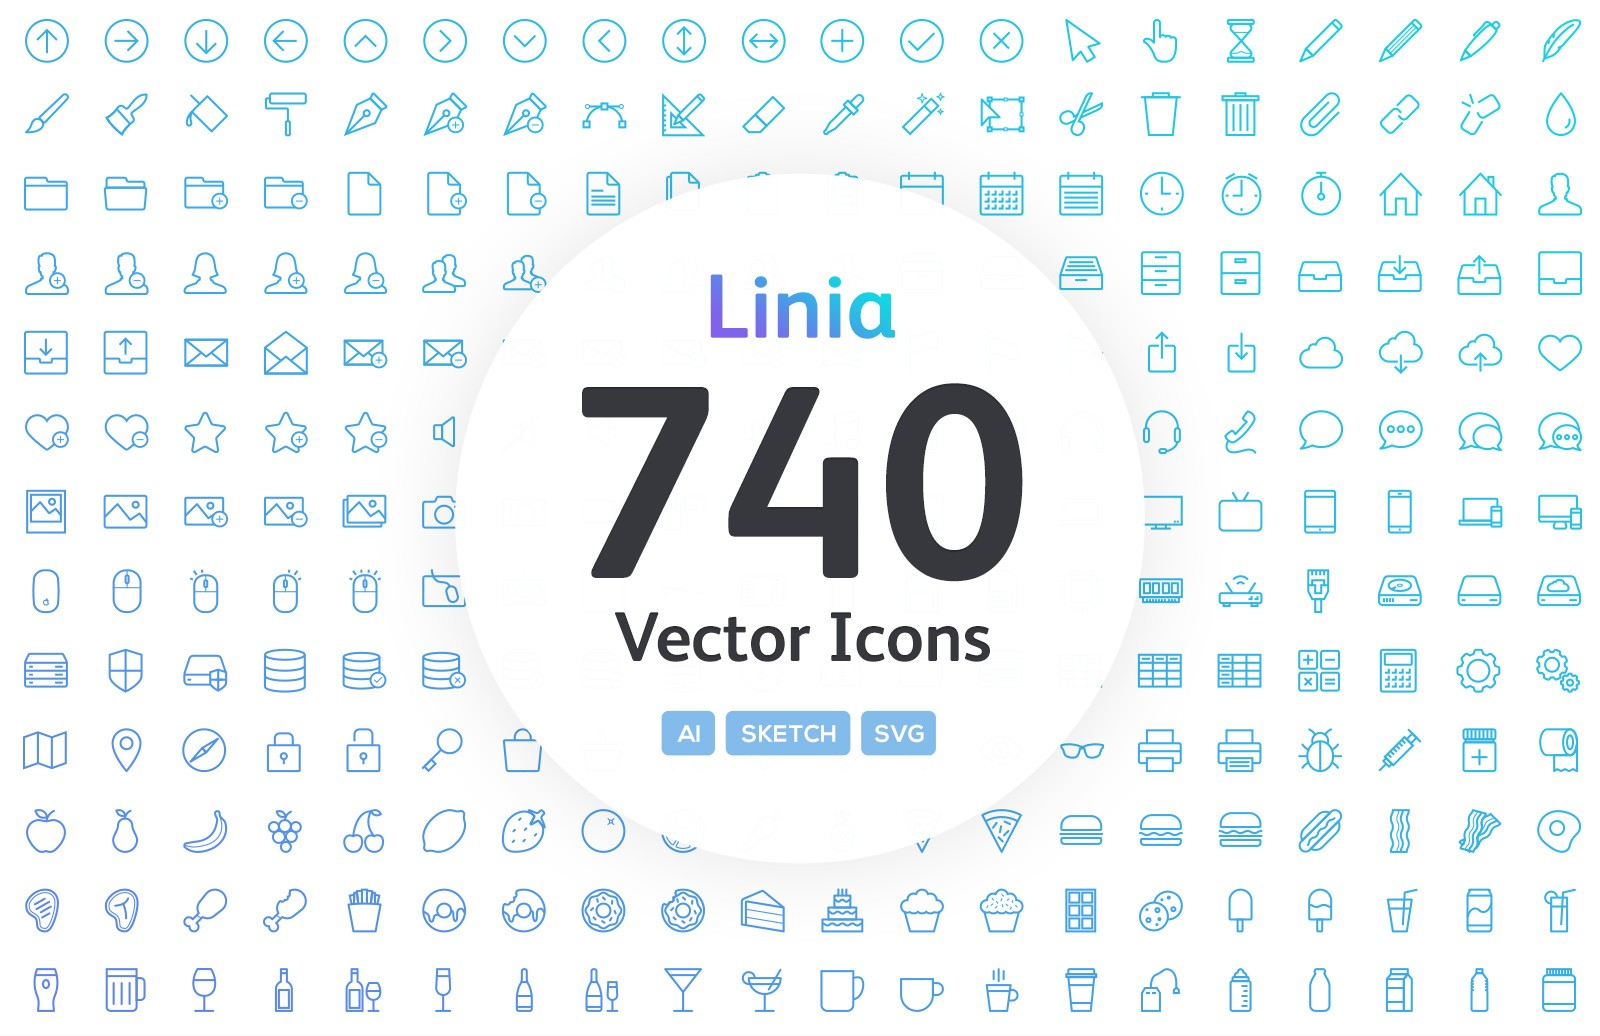 Linia - Line Vector Icons